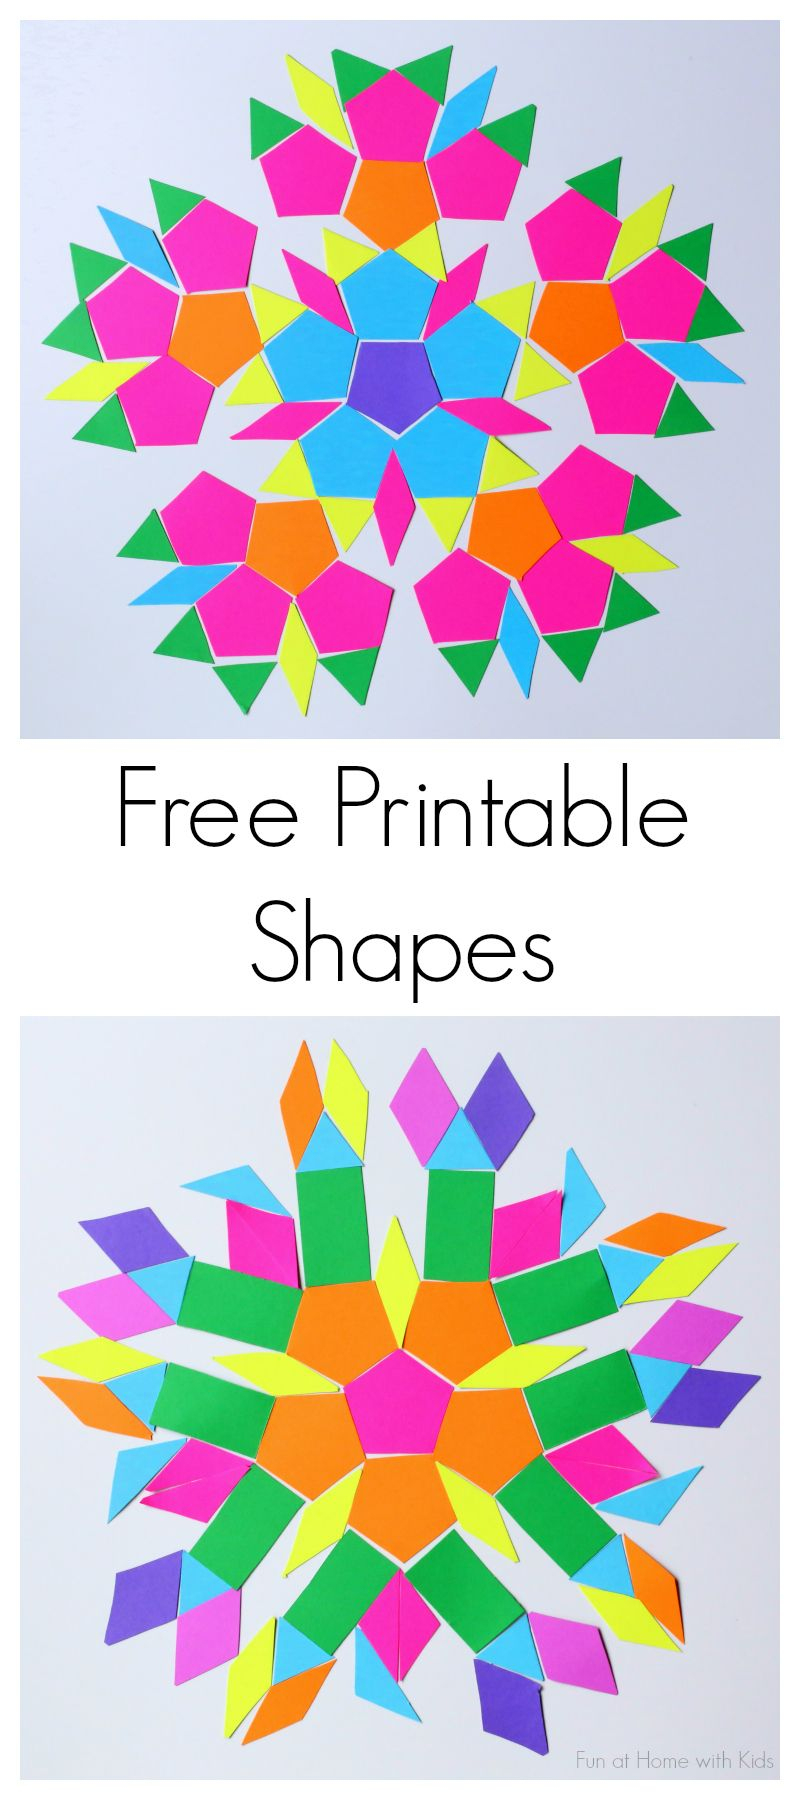 Free Printable Shapes For Travel Kit | Formes Geo - Free Printable Shapes